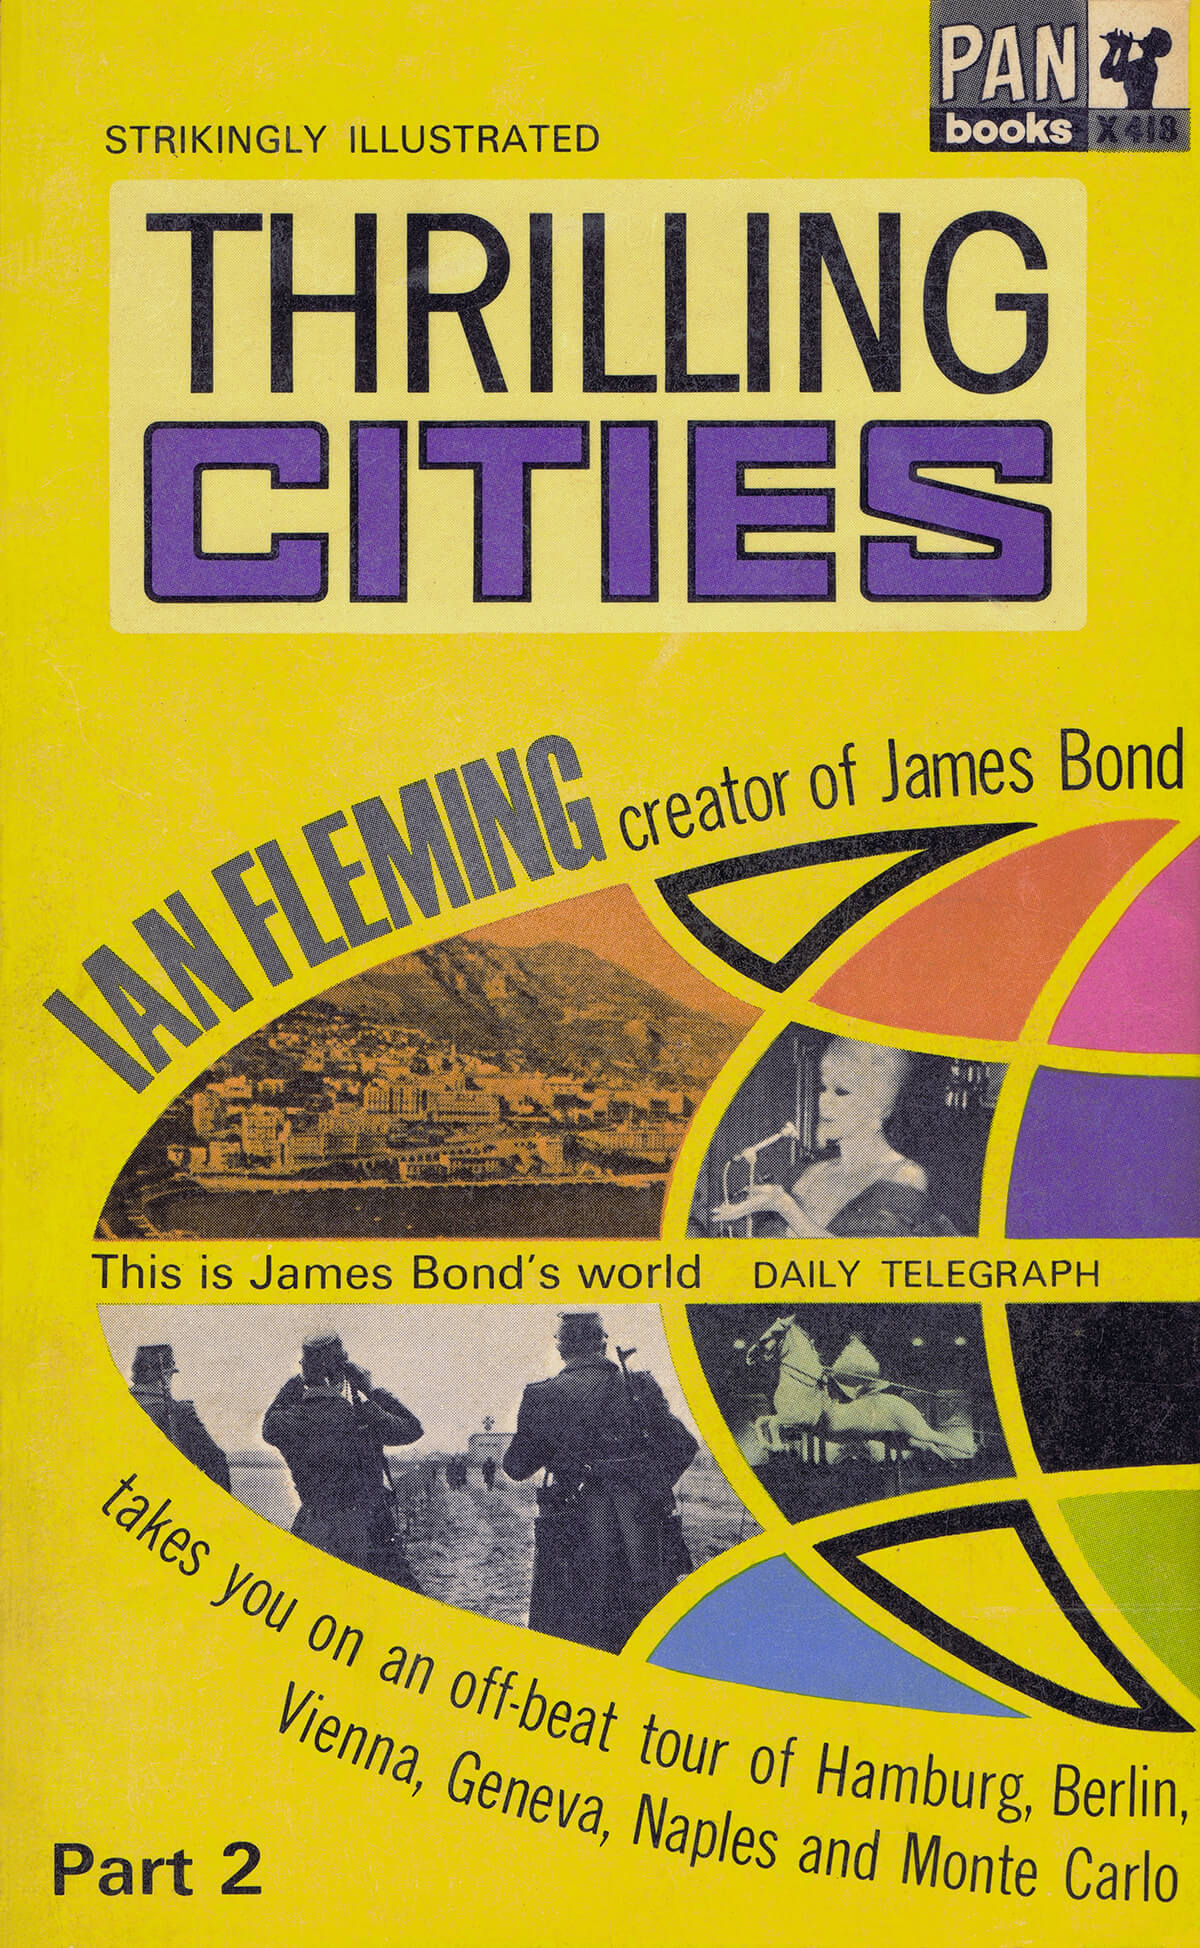 Thrilling Cities Part Two by Ian Fleming